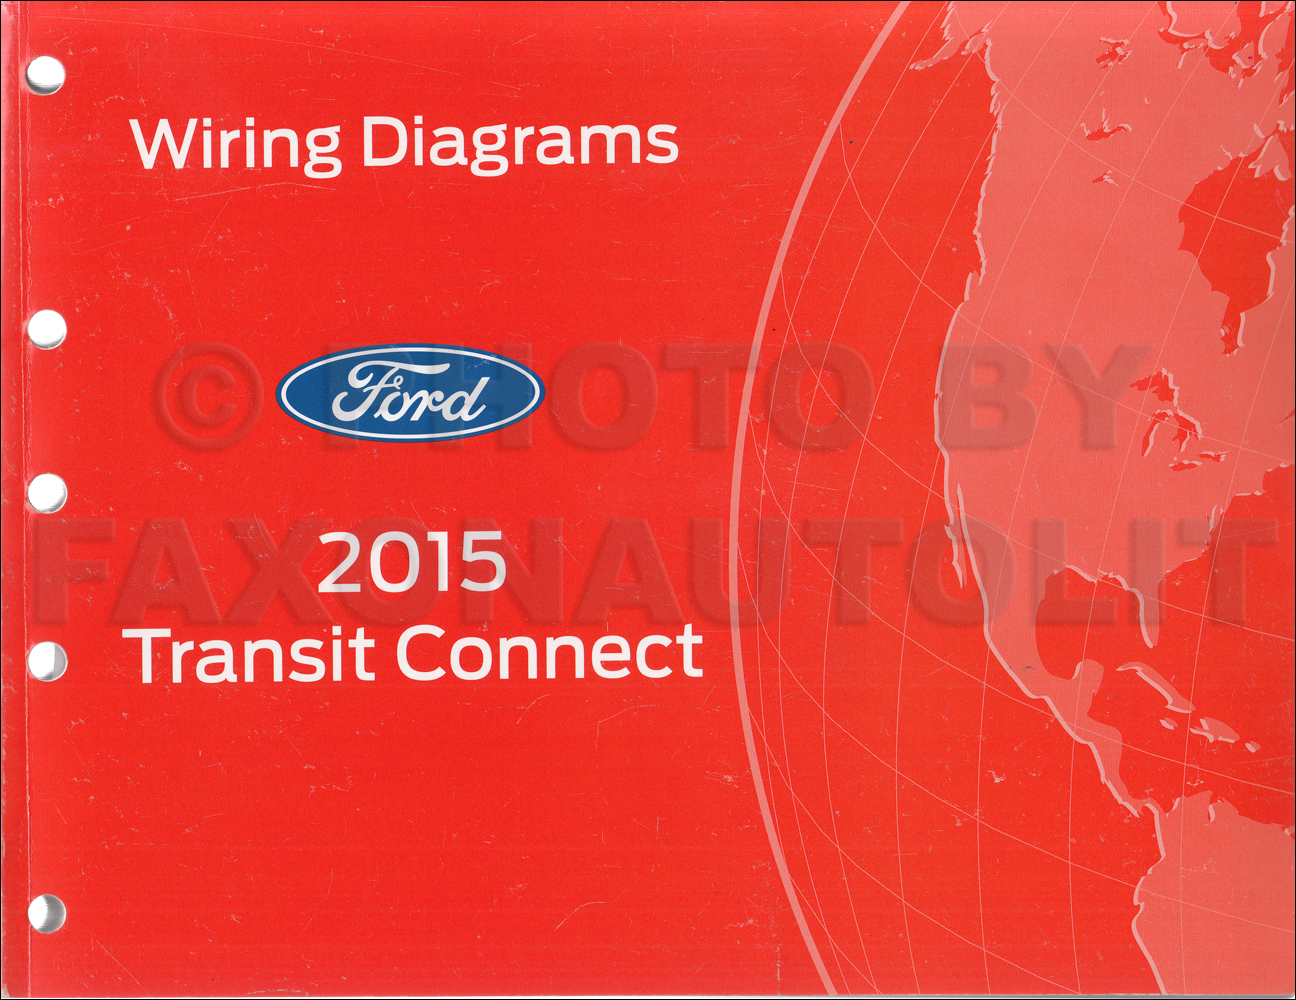 2015FordTransitConnectOWD 2015 ford transit connect wiring diagram manual original 2015 ford f 150 wiring harness diagram at eliteediting.co